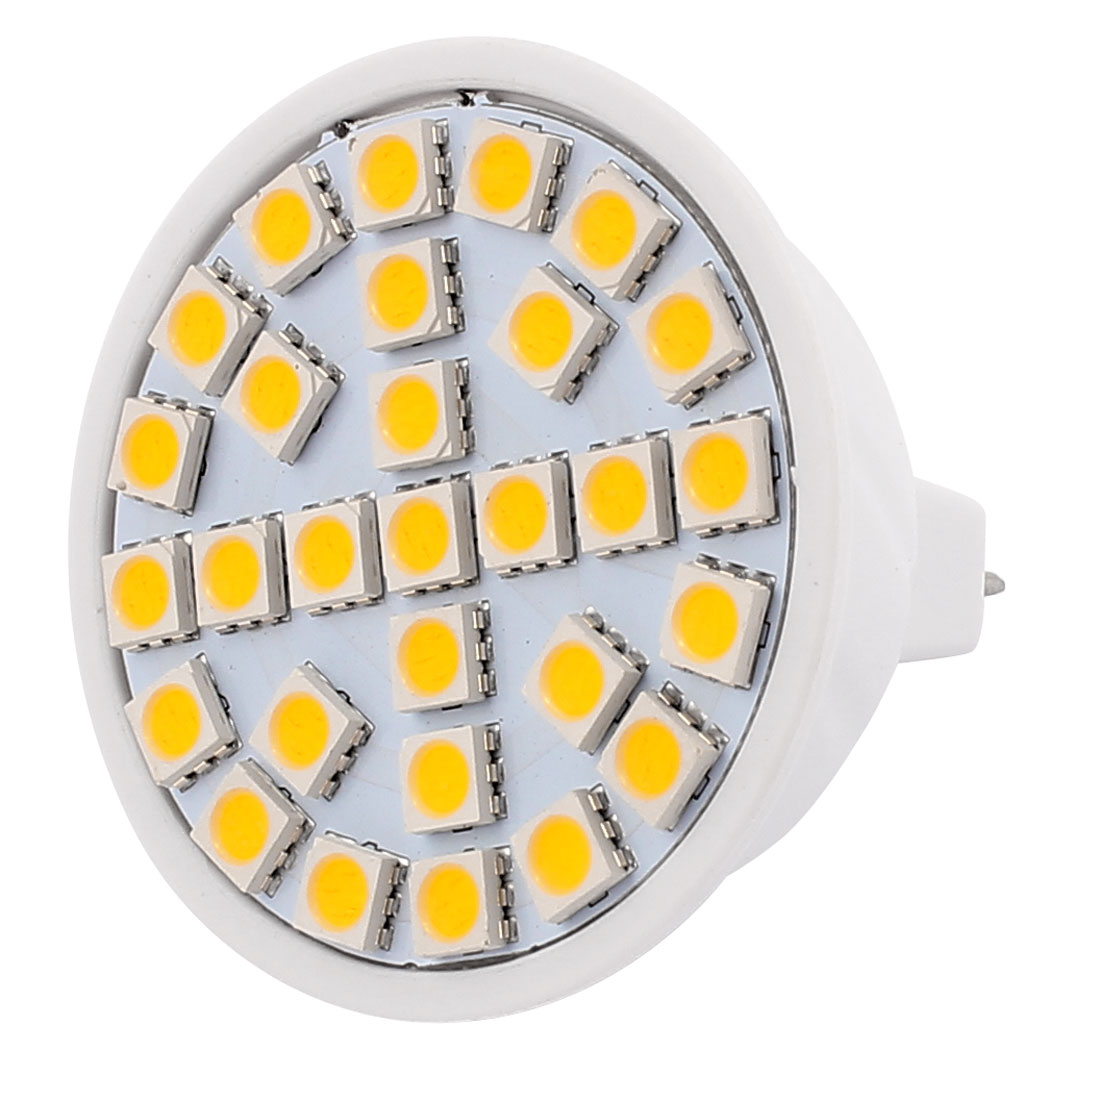 220V 5W MR16 5050 SMD 29 LEDs LED Bulb Light Spotlight Lamp Warm White